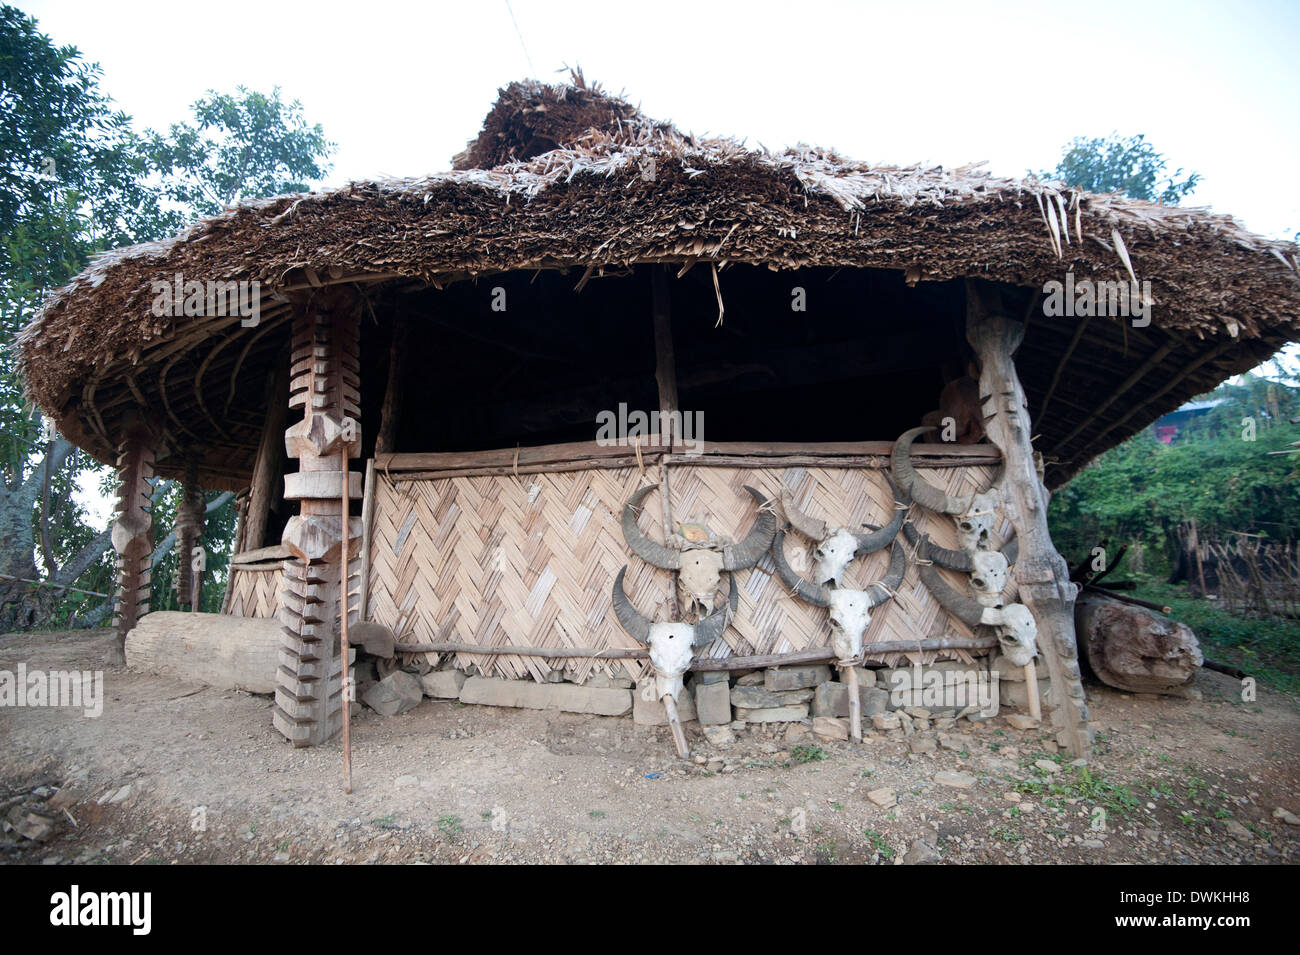 Village Gurung (boys dormitory) where tribal boys are trained to manhood, Ngangting, Nagaland, India - Stock Image